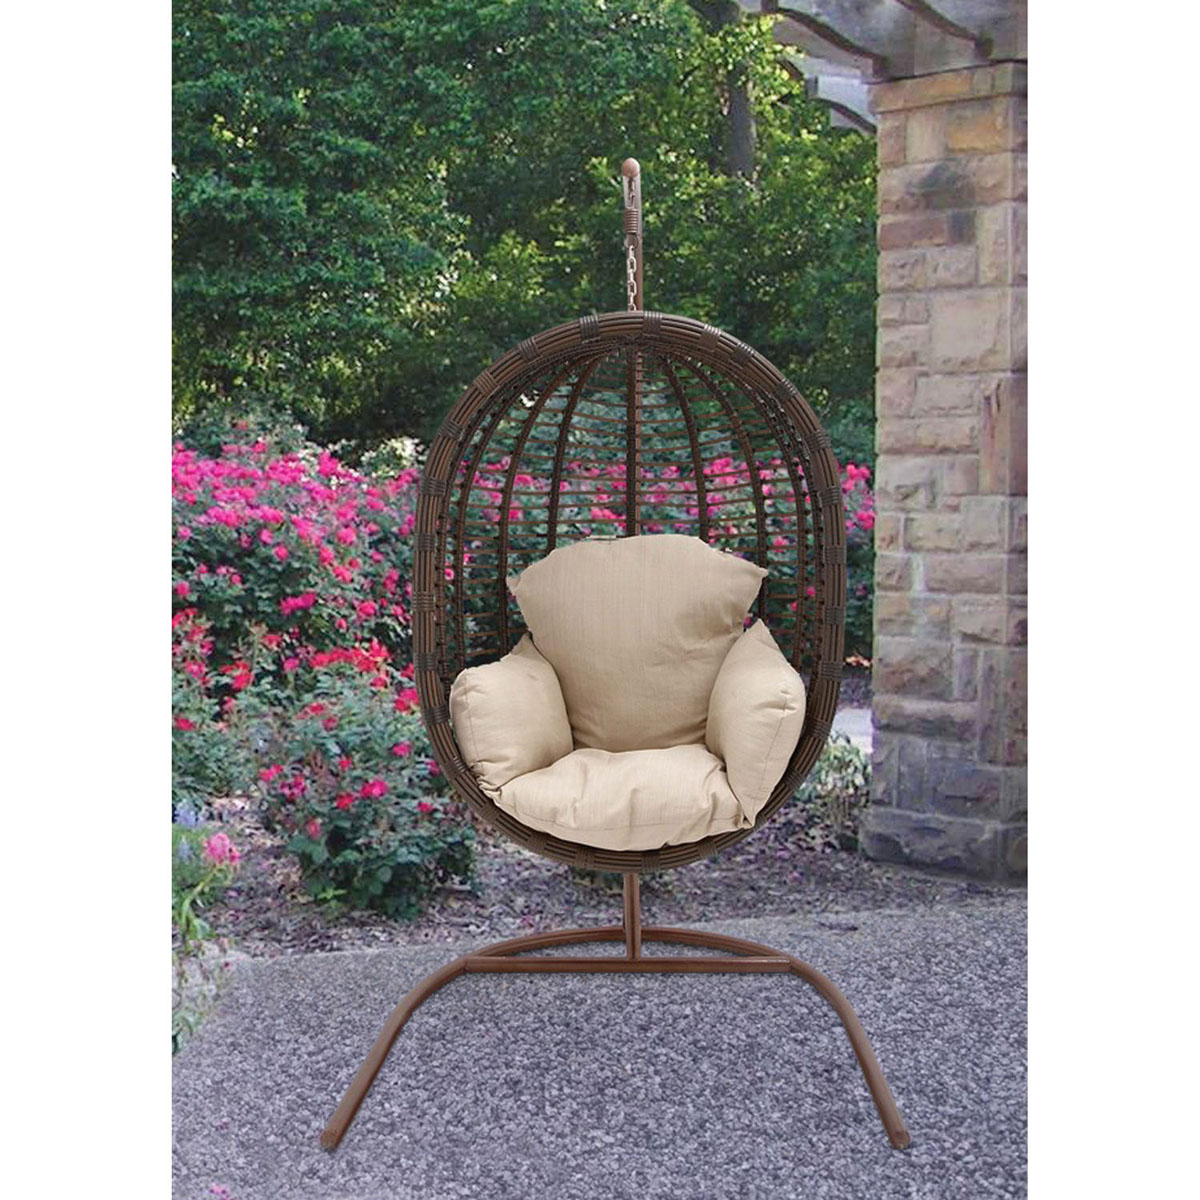 Outdoor Egg Chair Swing Hanover Outdoor Wicker Rattan Hanging Egg Chair Swing With